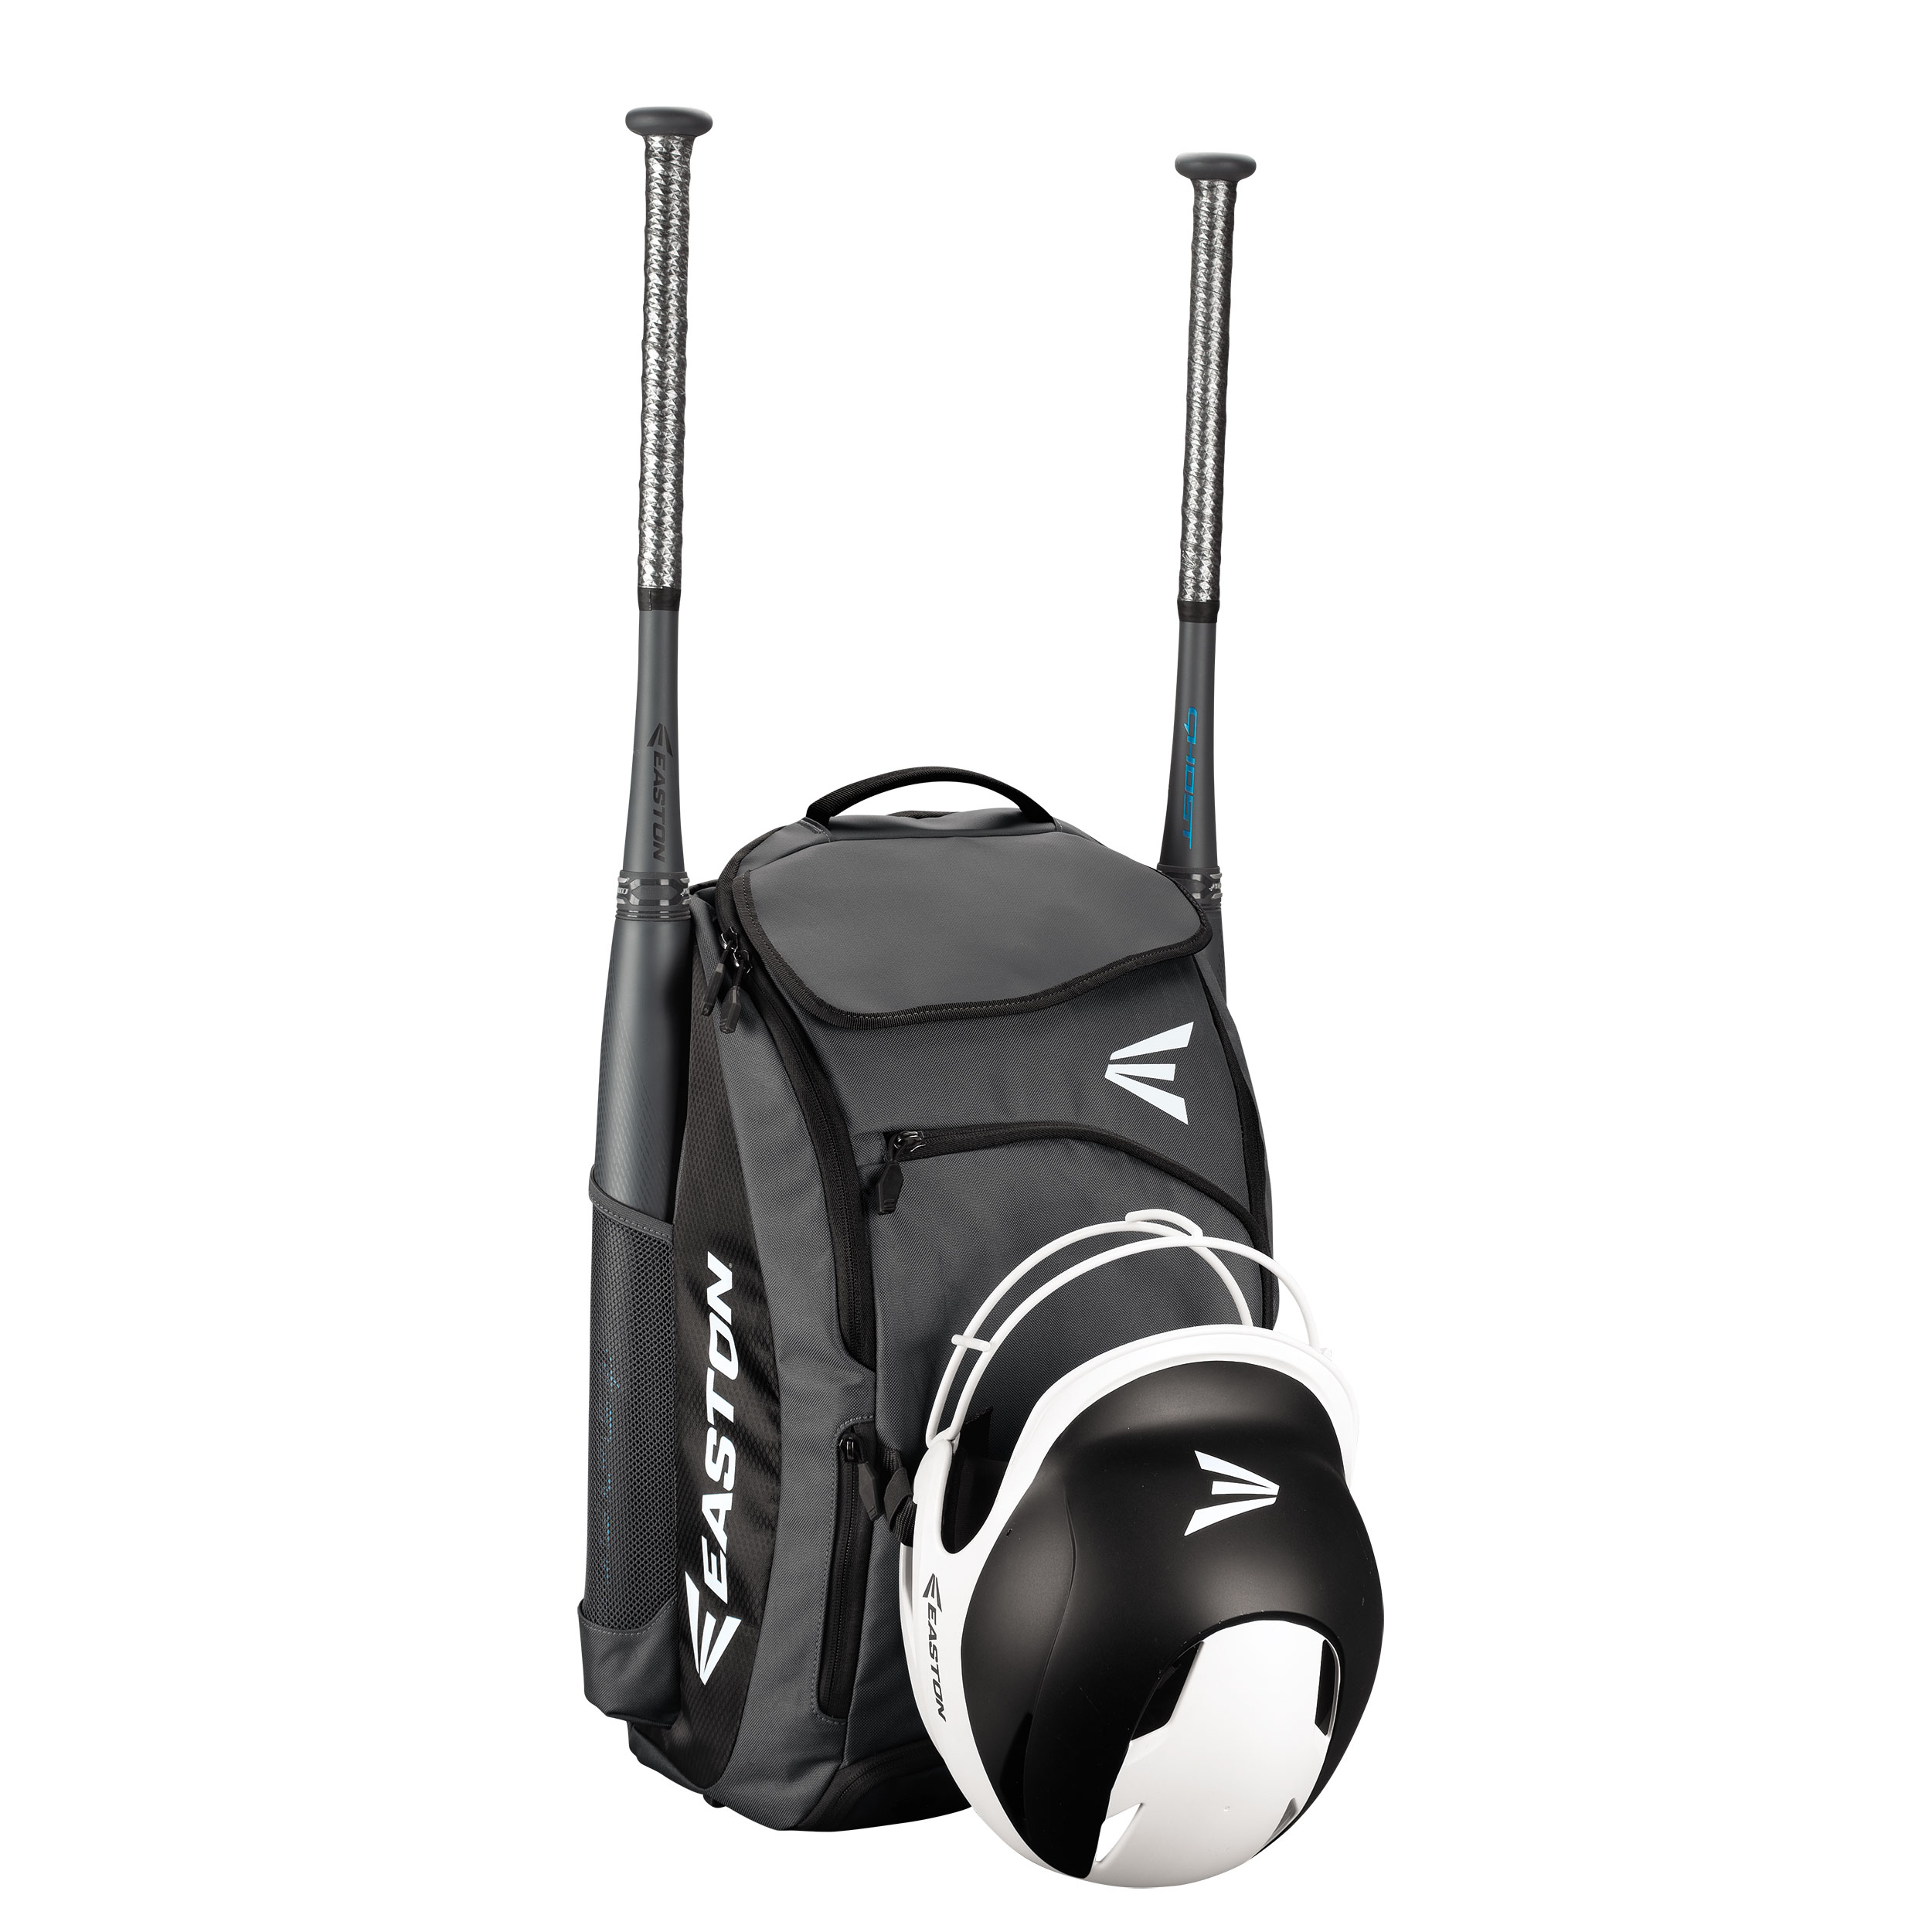 Easton Prowess Fastpitch Softball Backpack Bag